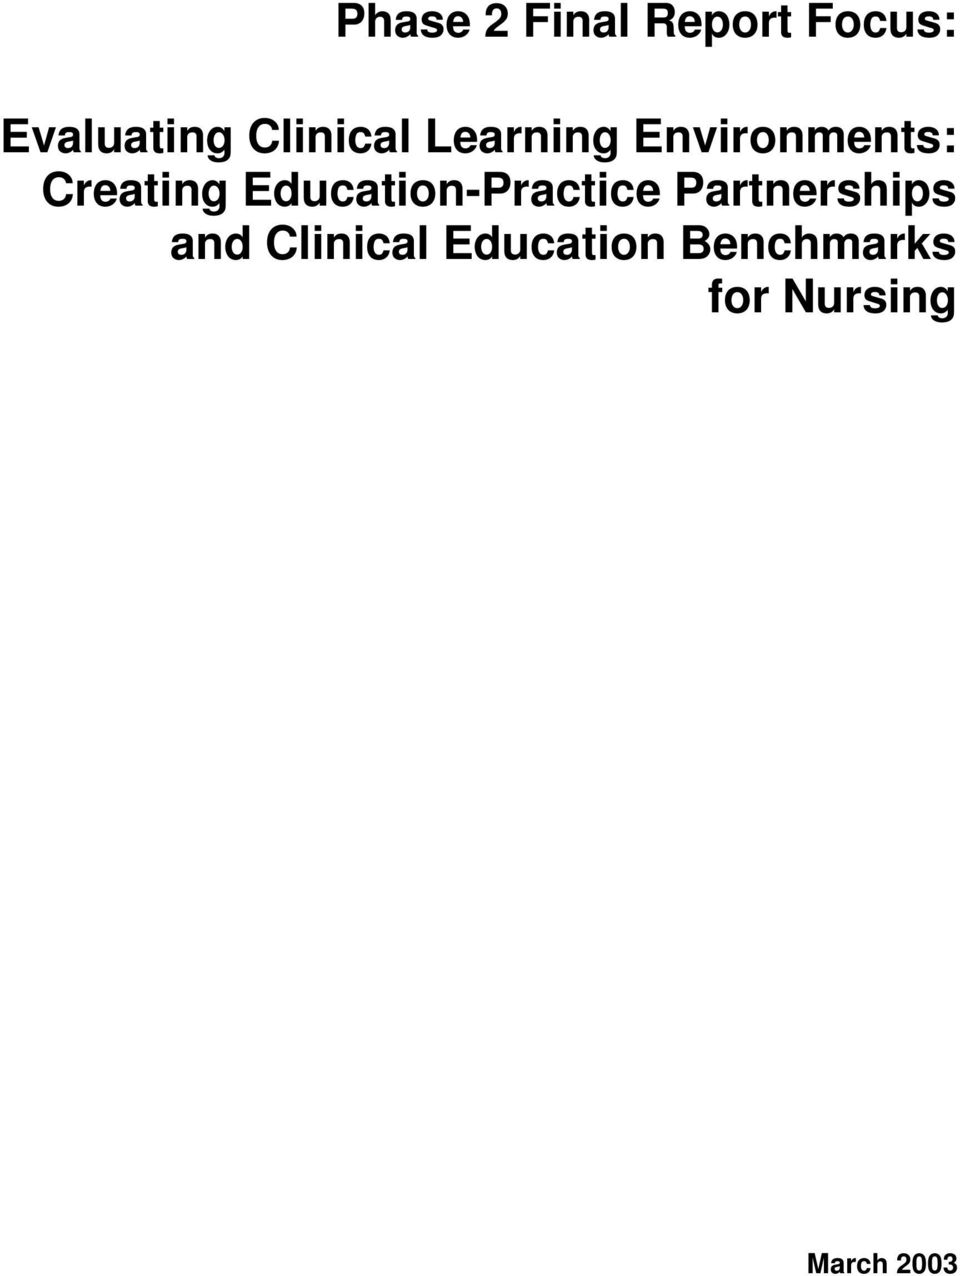 Education-Practice Partnerships and